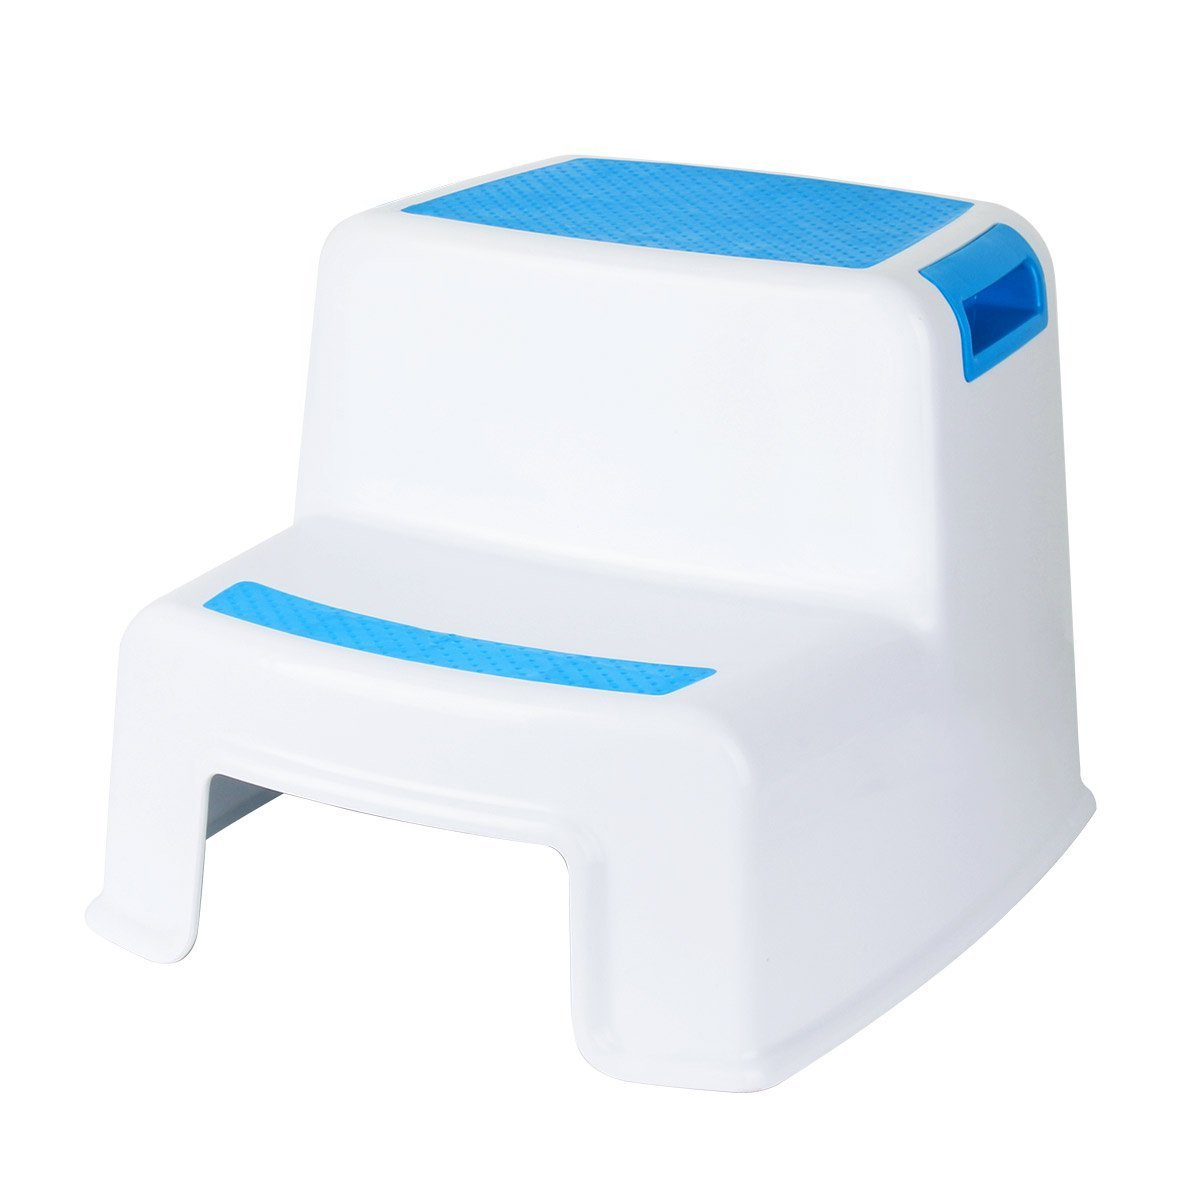 Roychamp Step Stool, Dual Height Two Step Anti-slip Children Step up Stool with Safety Material for Toddlers, Kids and Adults for Potty Training, Bathroom, Toilet and Kitchen (Blue)